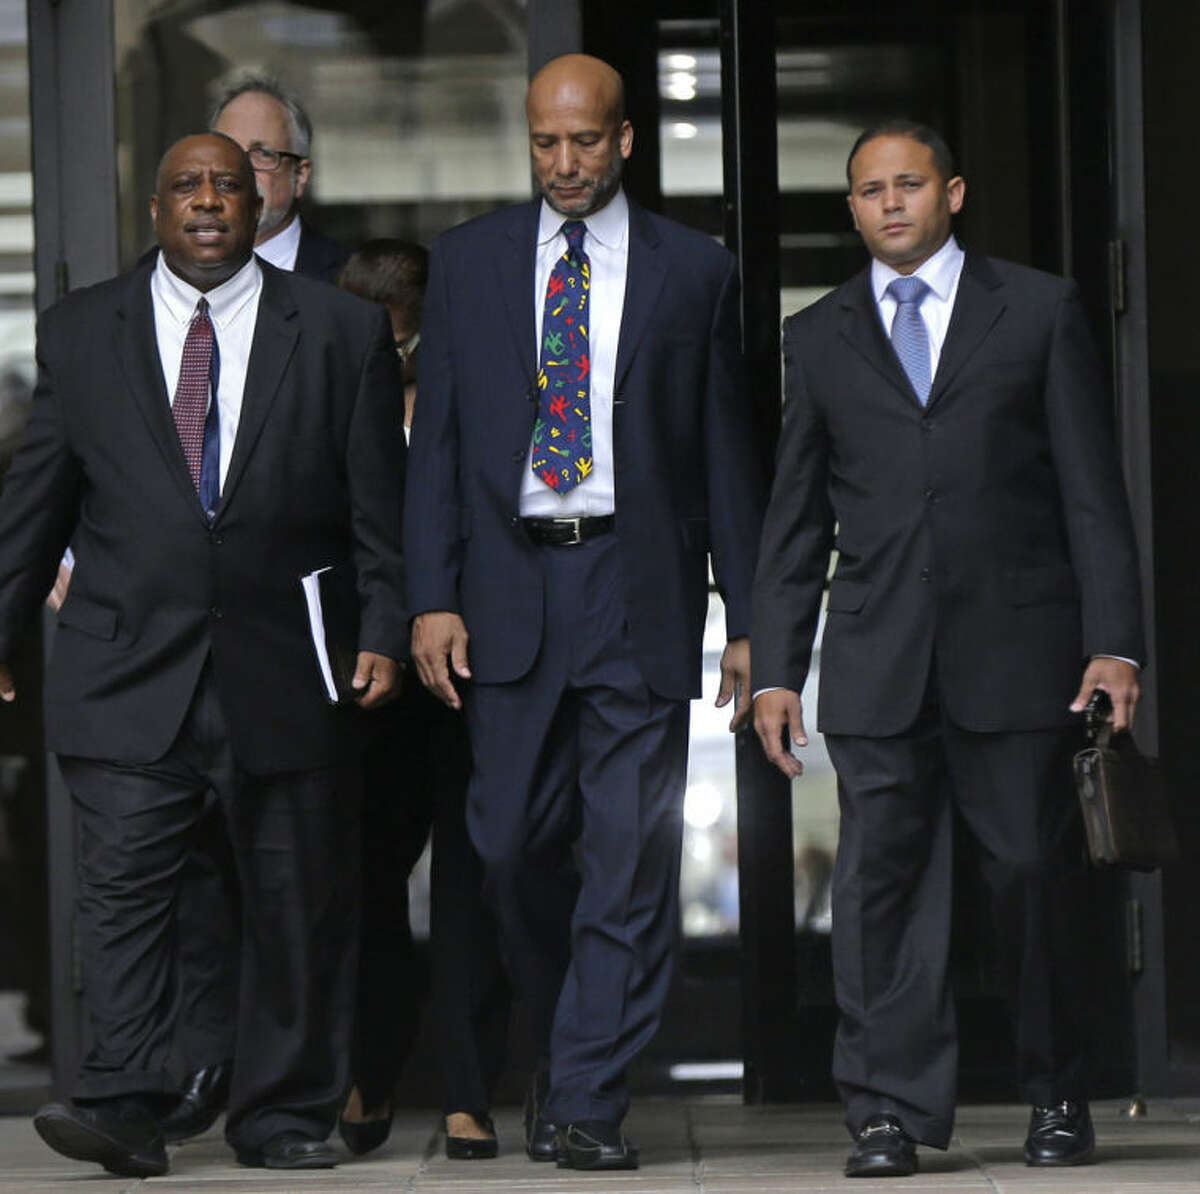 Former New Orleans Mayor Ray Nagin, center, leaves federal court after being sentenced in New Orleans, Wednesday, July 9, 2014. Nagin was sentenced Wednesday to 10 years in prison for bribery, money laundering and other corruption that spanned his two terms as mayor, including the chaotic years after Hurricane Katrina hit in 2005. He was convicted Feb. 12 of accepting hundreds of thousands of dollars from businessmen who wanted work from the city or Nagin's support for various projects. The bribes came in the form of money, free vacations and truckloads of free granite for his family business. (AP Photo/Gerald Herbert)